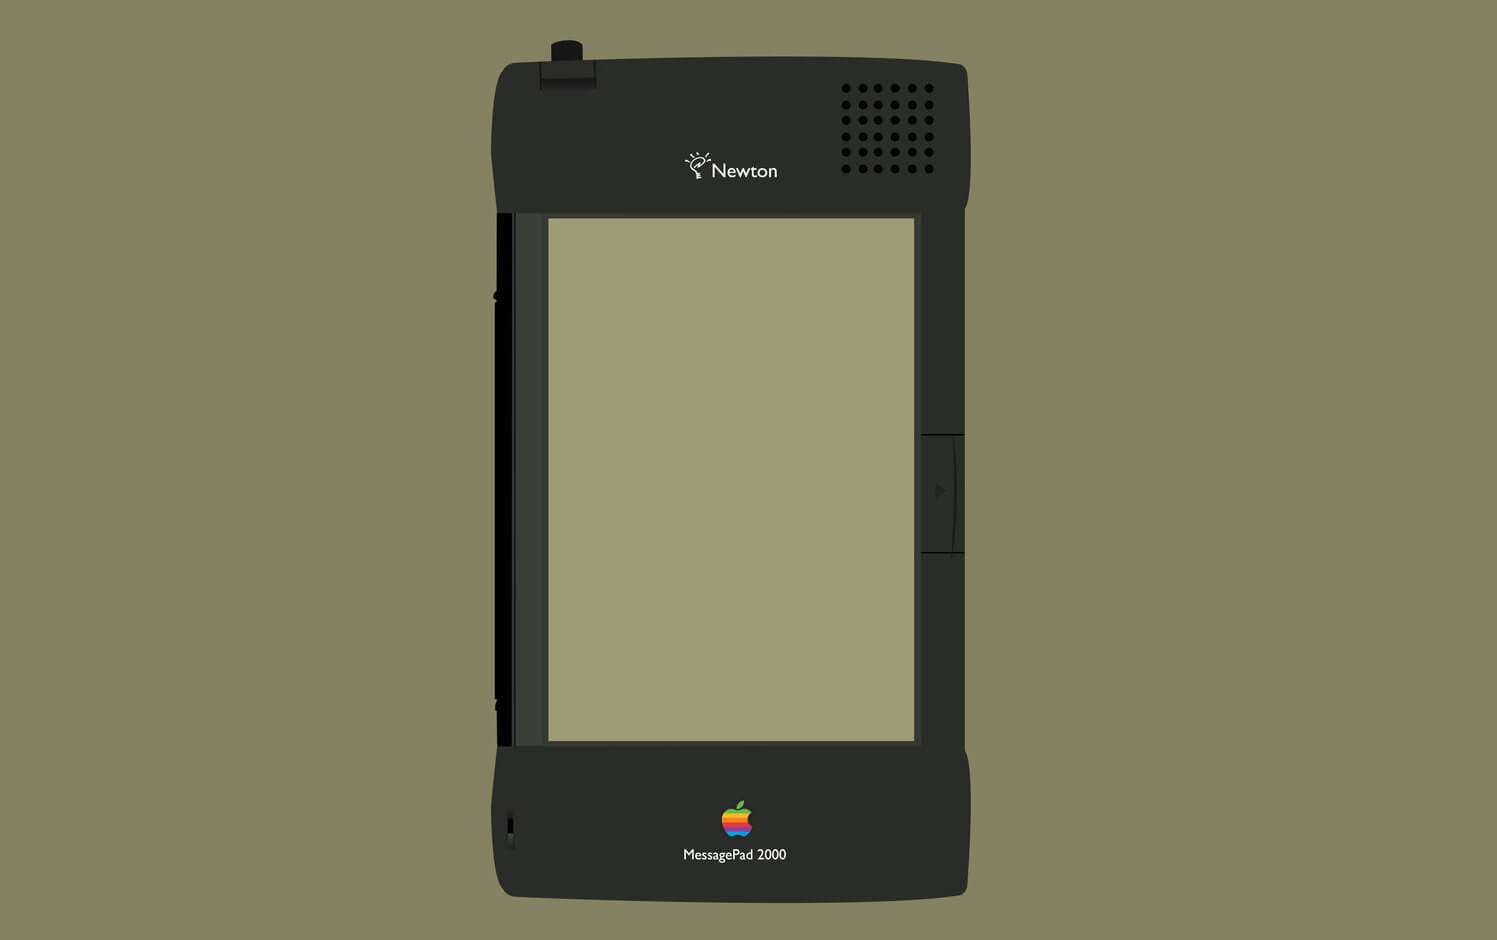 apple_newton_messagepad_2000_by_raintomista-d62poug